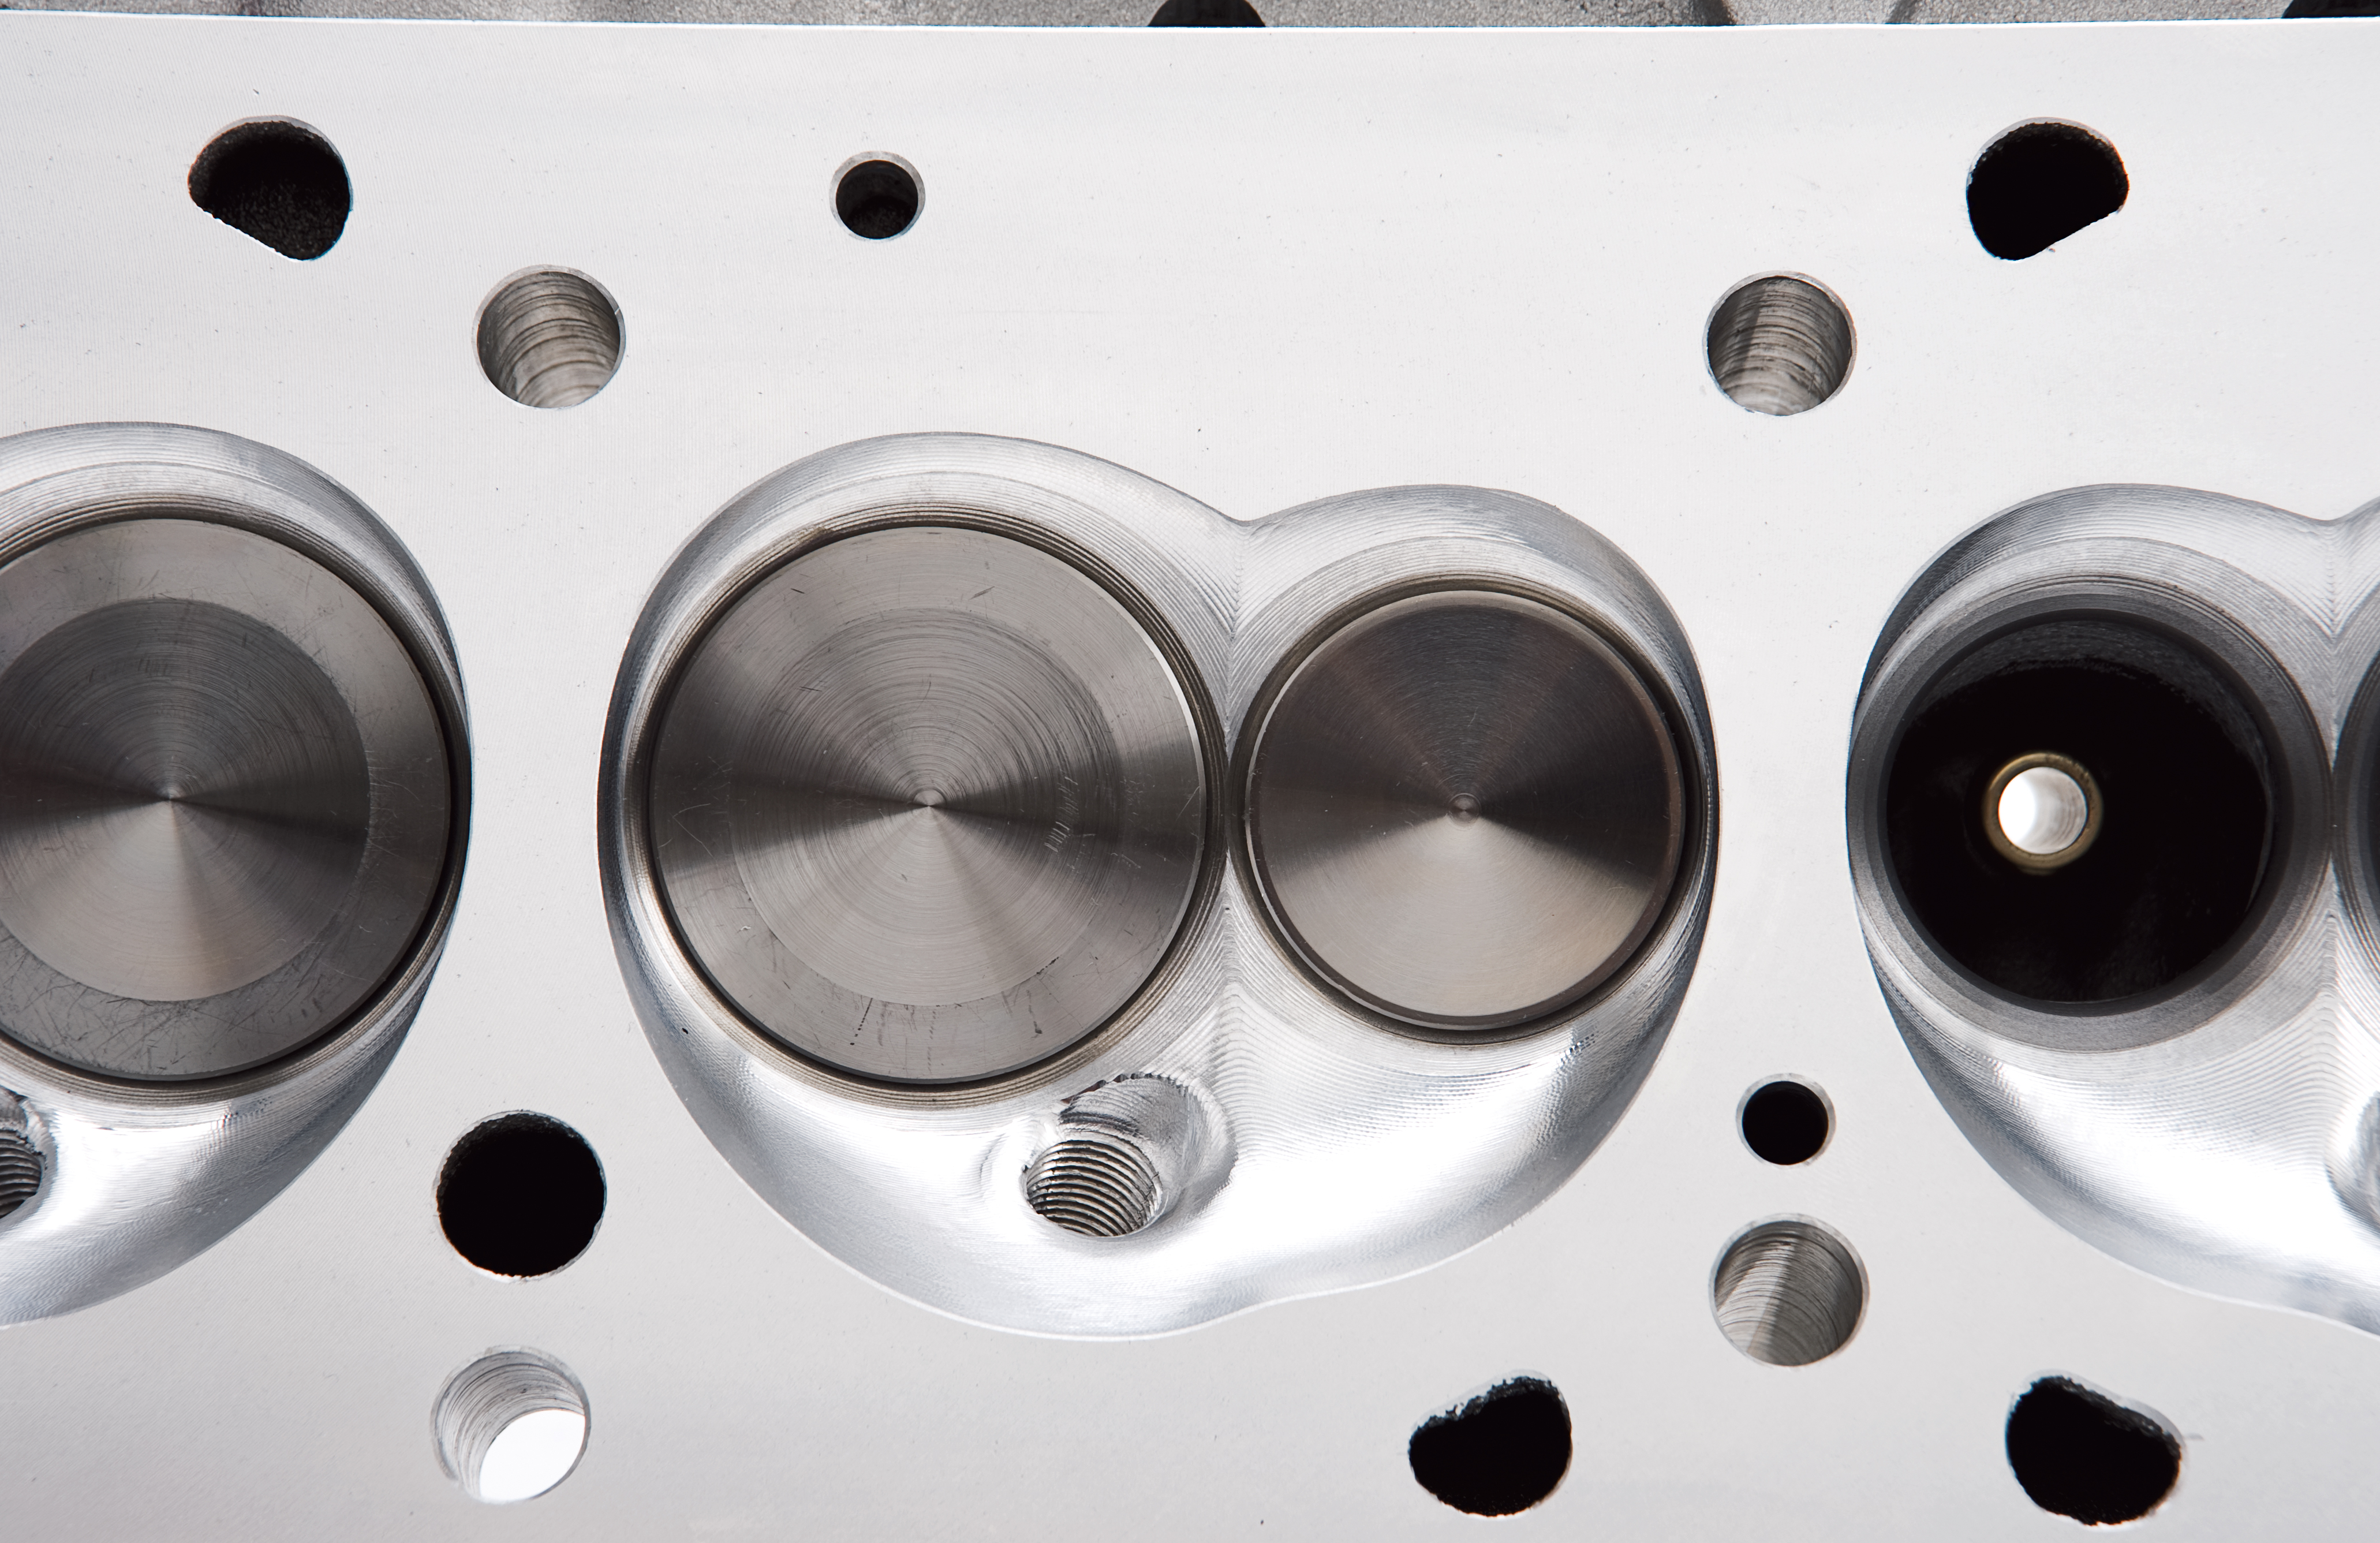 Pontiac Performer CNC Cylinder Heads for 455 Engines